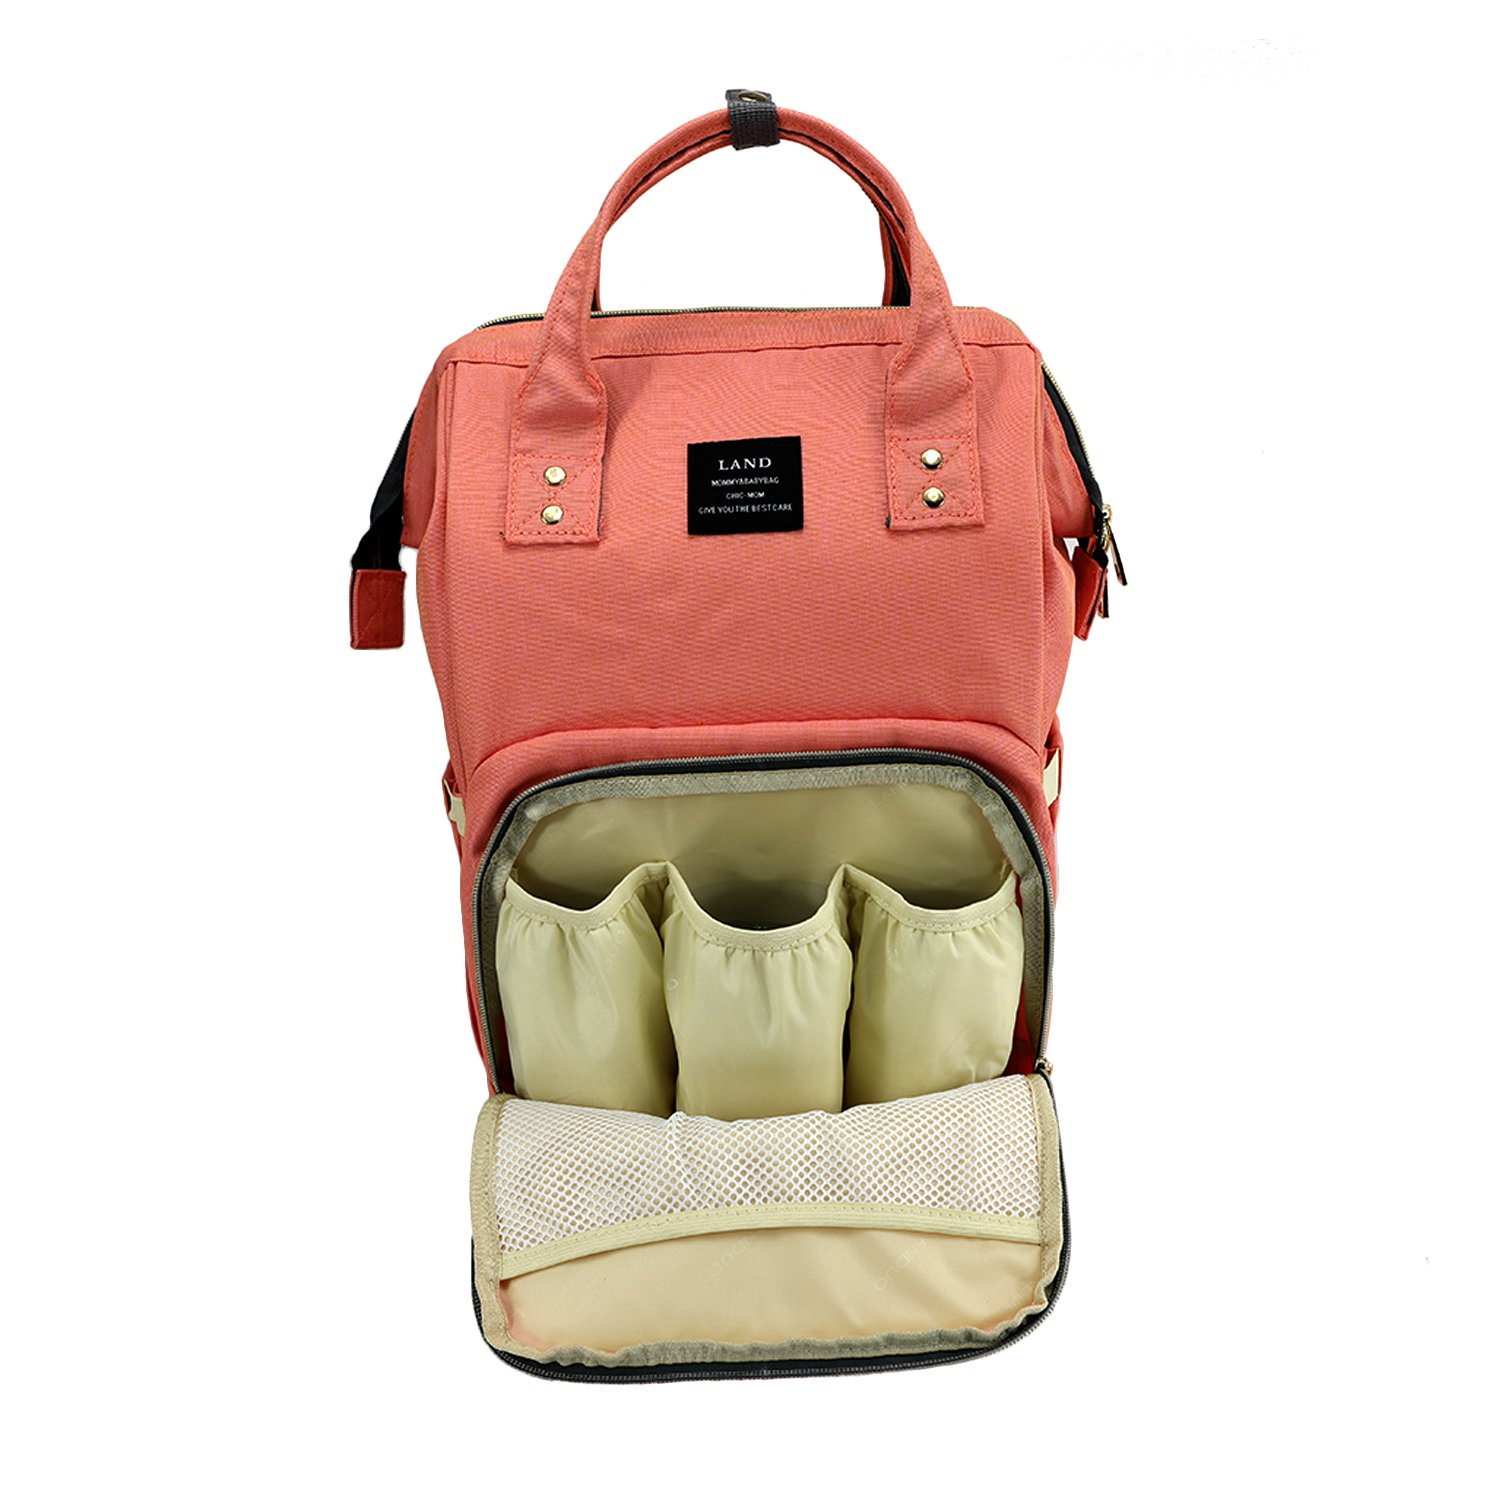 Land Baby Diaper Bag Large Capacity Mommy Backpack Baby Nappy Tote Bags  Multi-Function Travelling Backpack for Mom Travellers Nurses Students  Everyouth ... 72555bb3d8c34